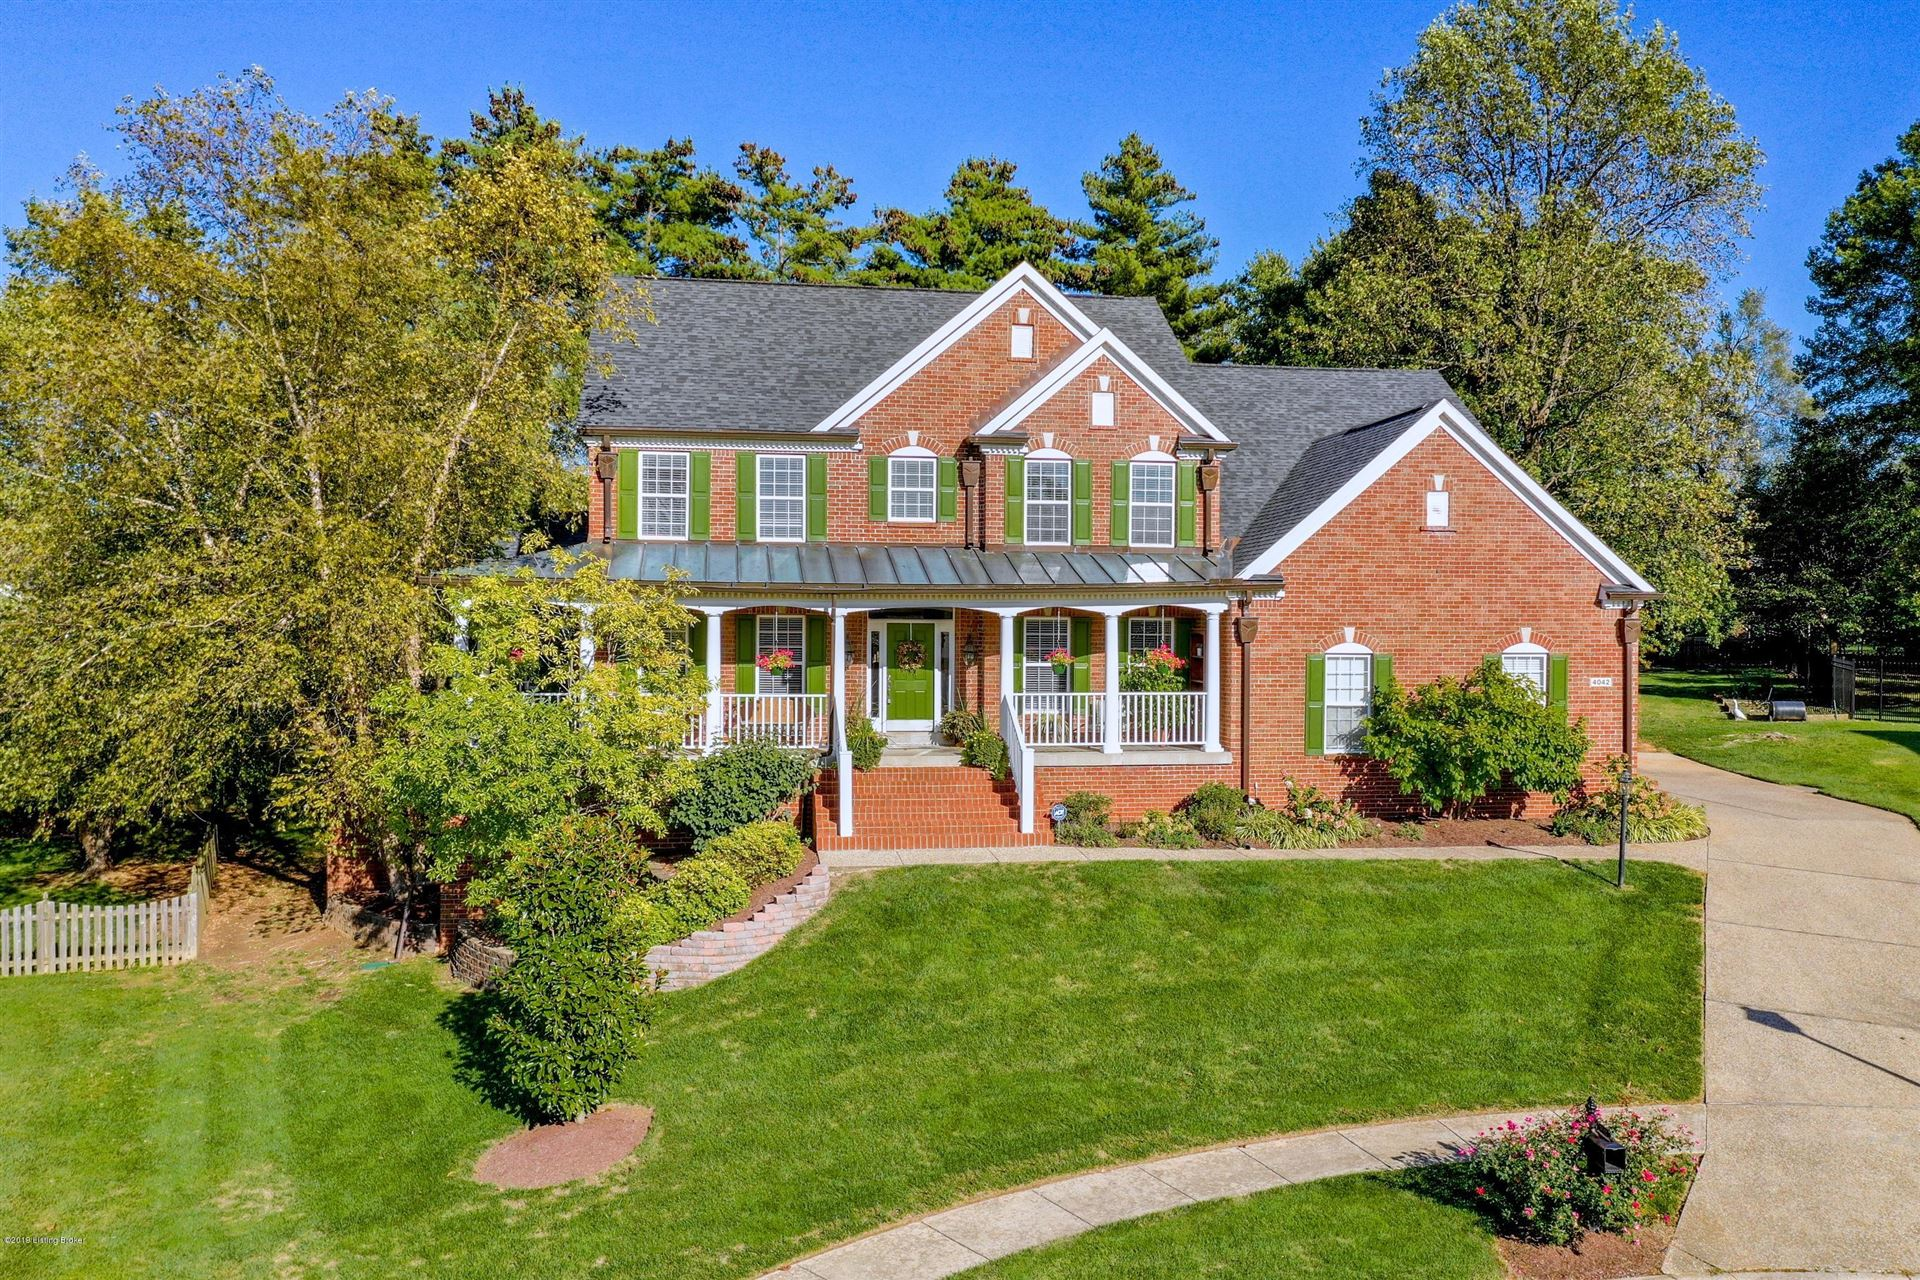 Property Image Of 4042 Whiteblossom Estates Ct In Louisville, Ky